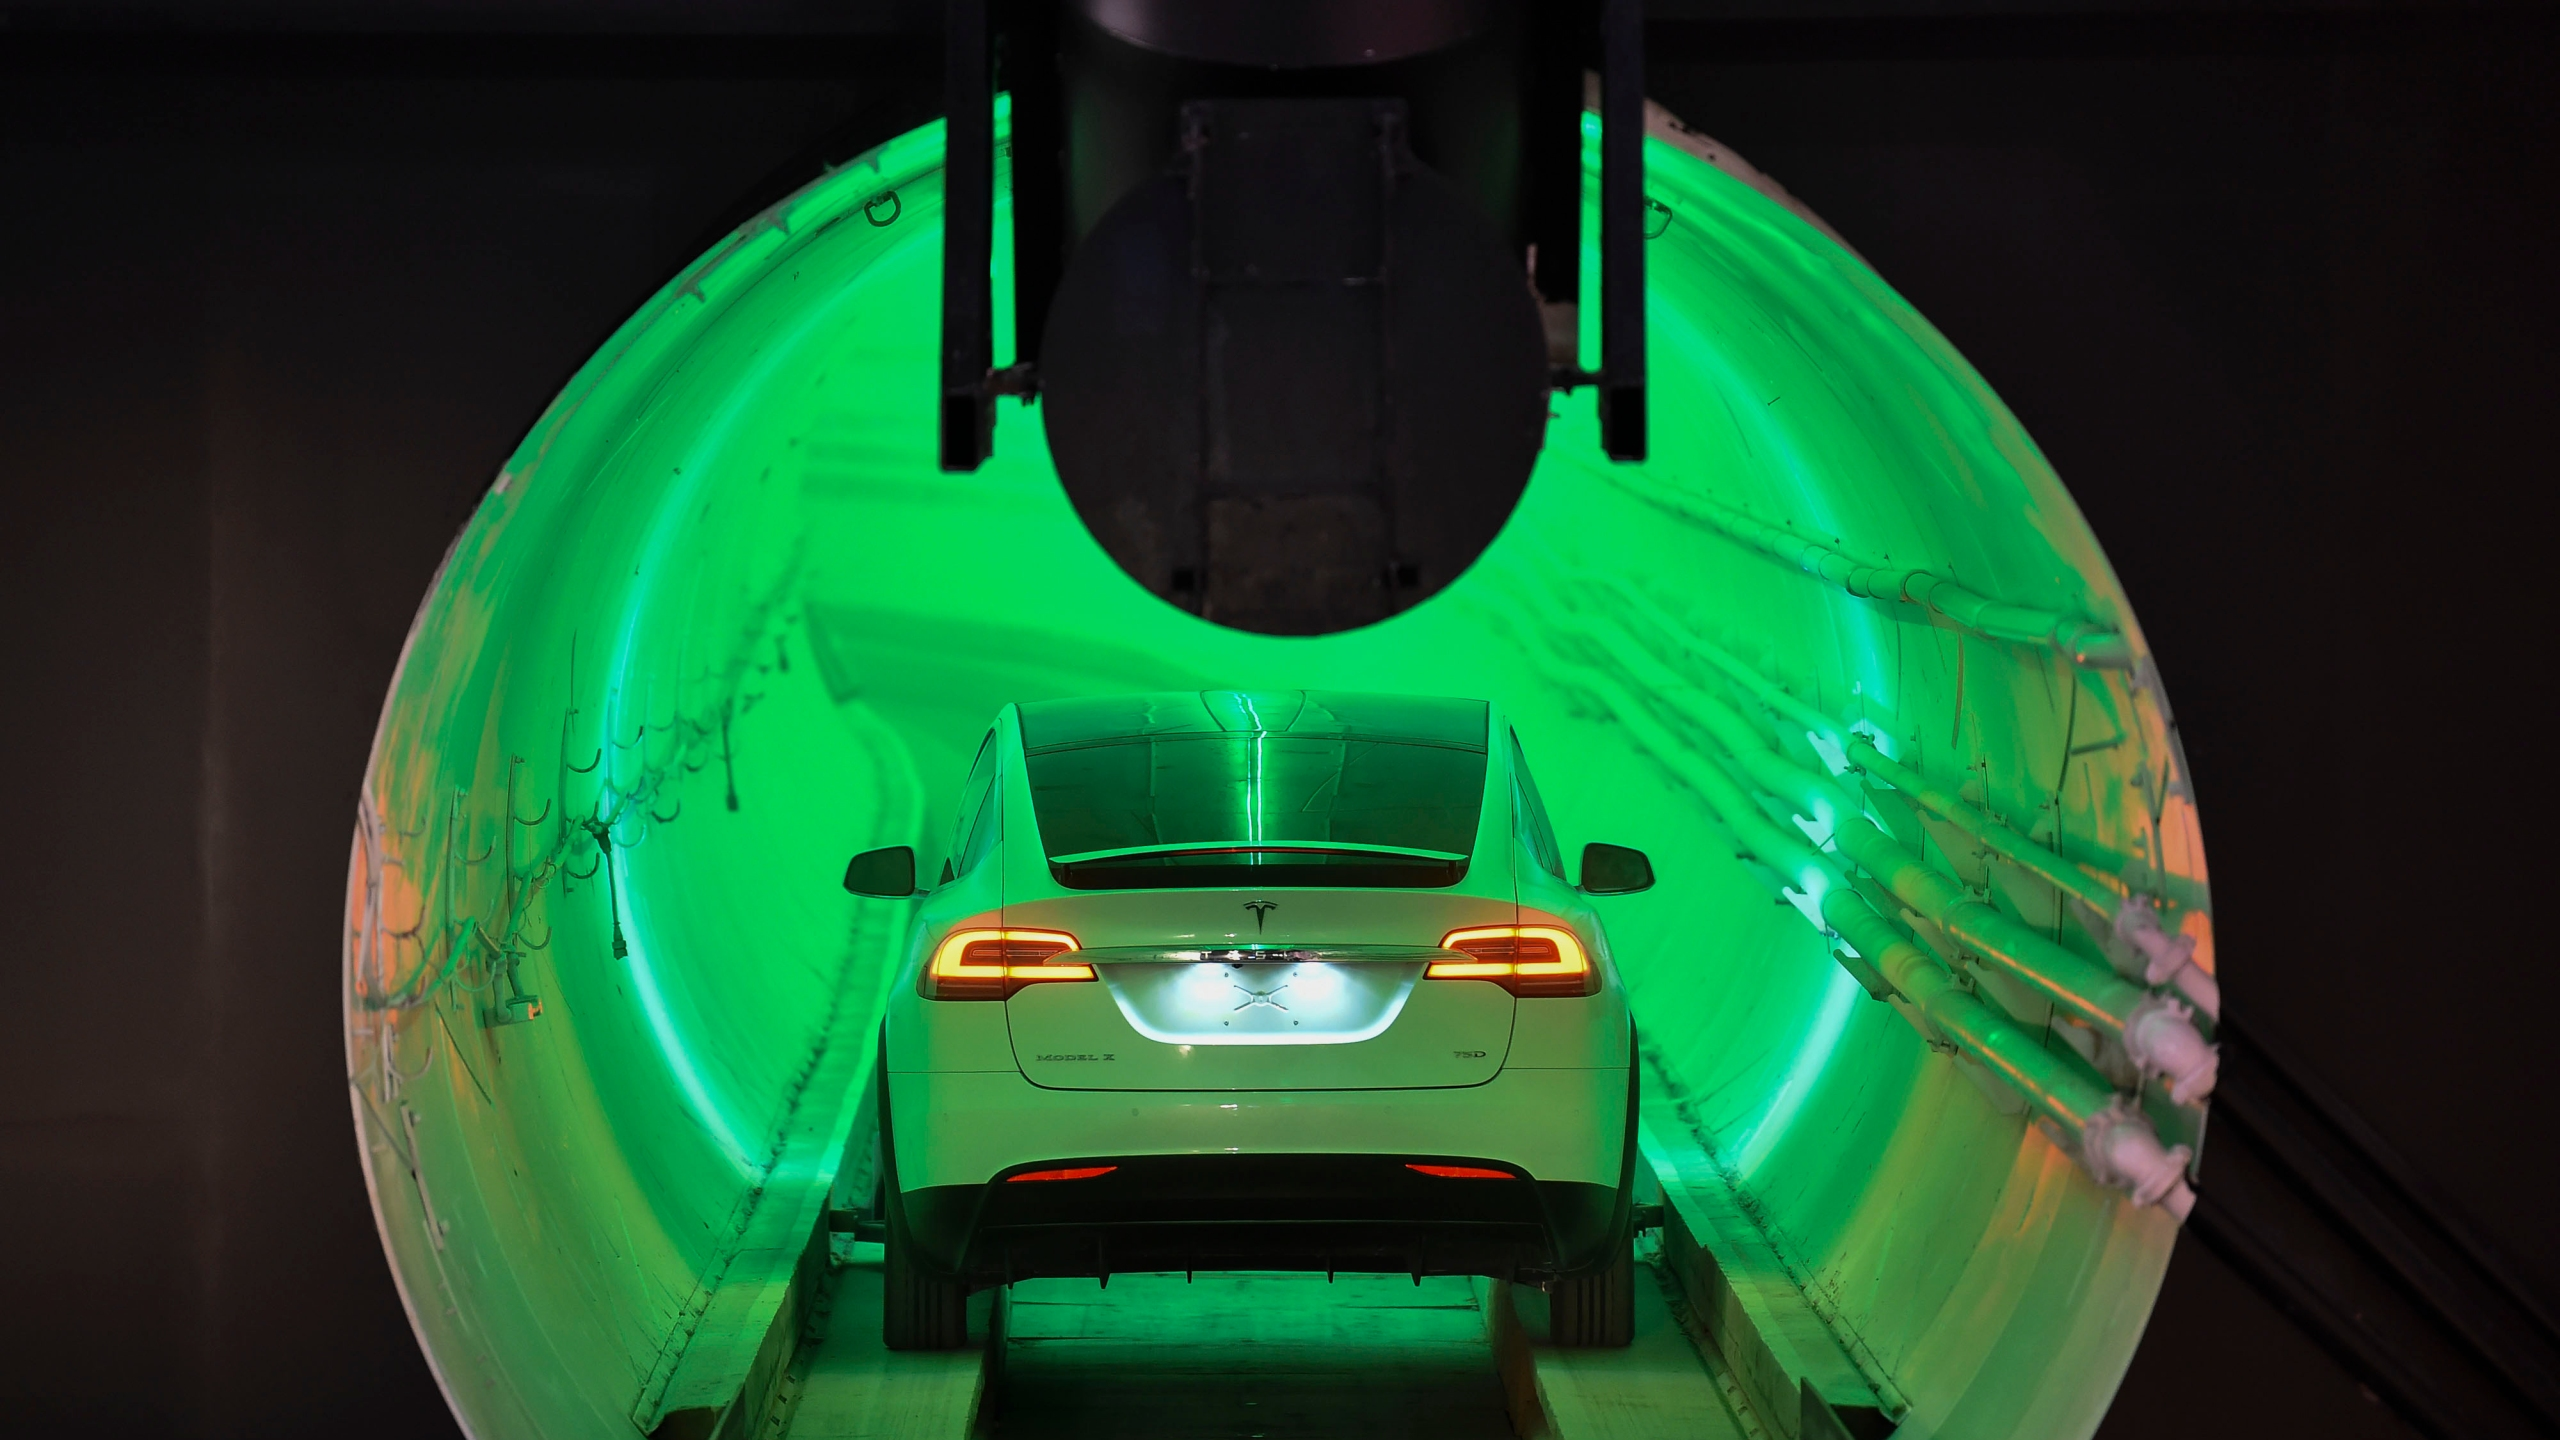 A modified Tesla Model X drives into the tunnel entrance before an unveiling event for the Boring Company Hawthorne test tunnel in Hawthorne, south of Los Angeles on Dec. 18, 2018. (Credit: ROBYN BECK/AFP via Getty Images)